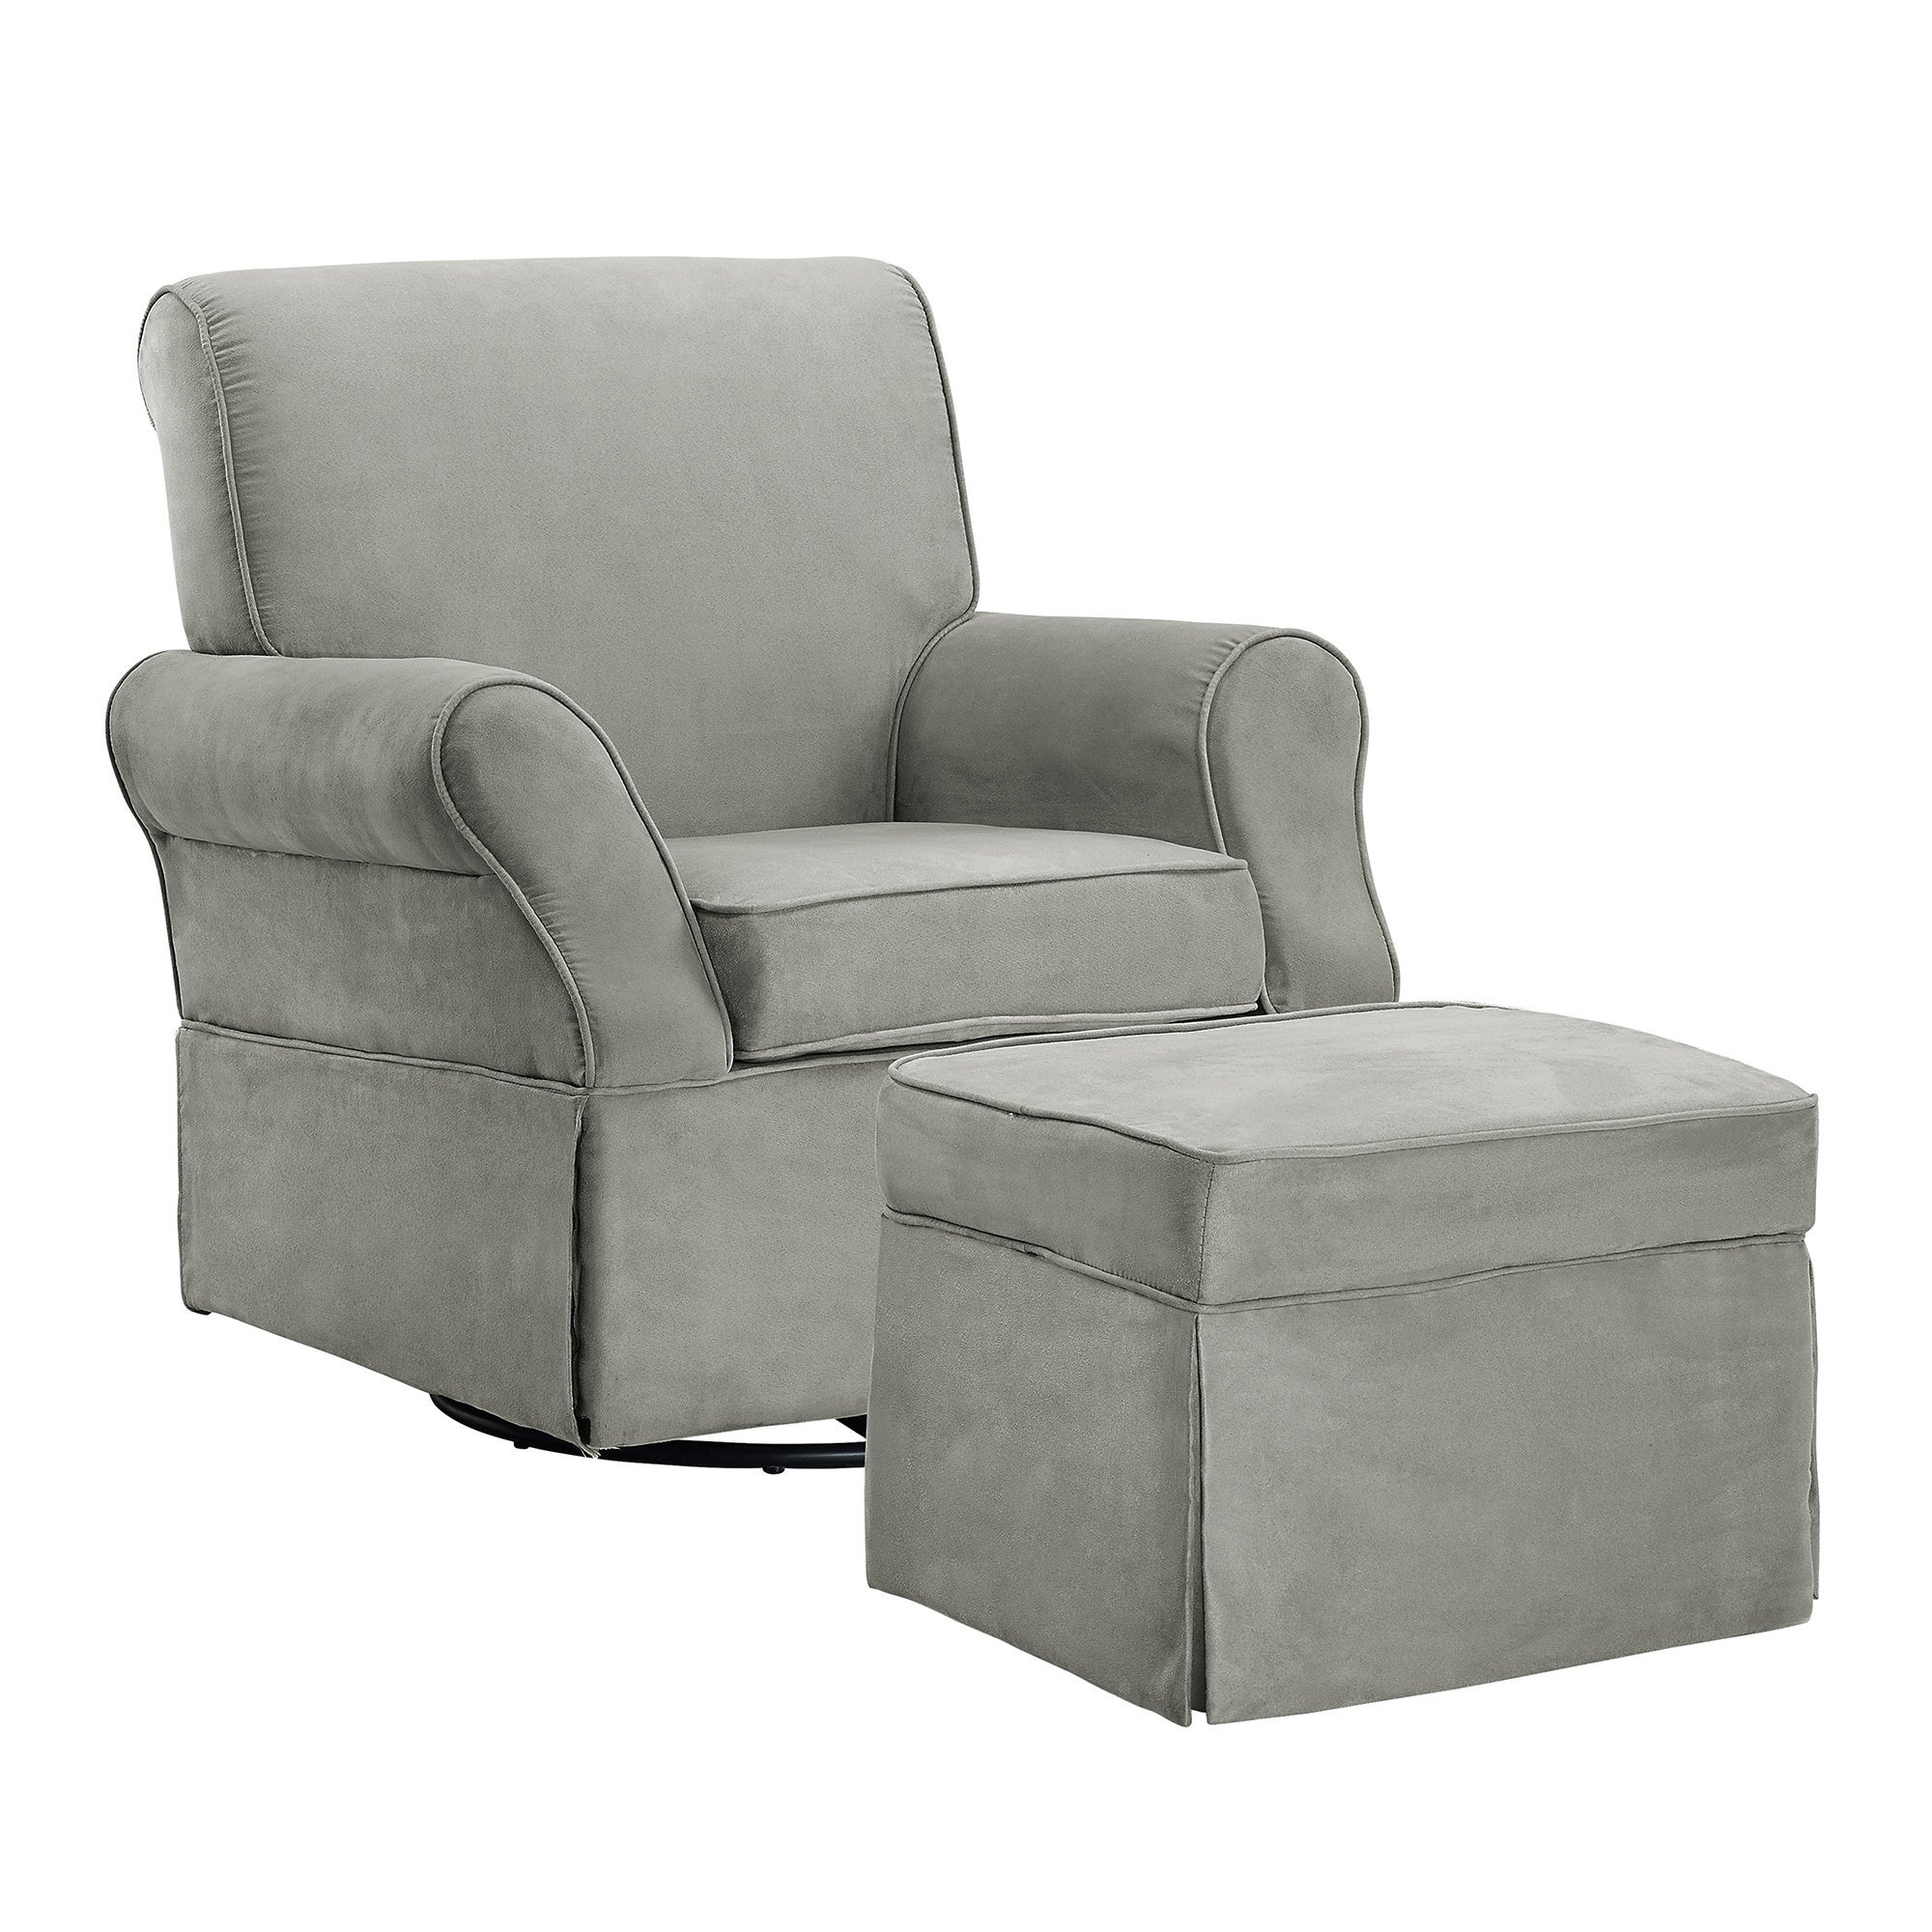 baby relax the kelcie nursery swivel glider chair and ottoman set